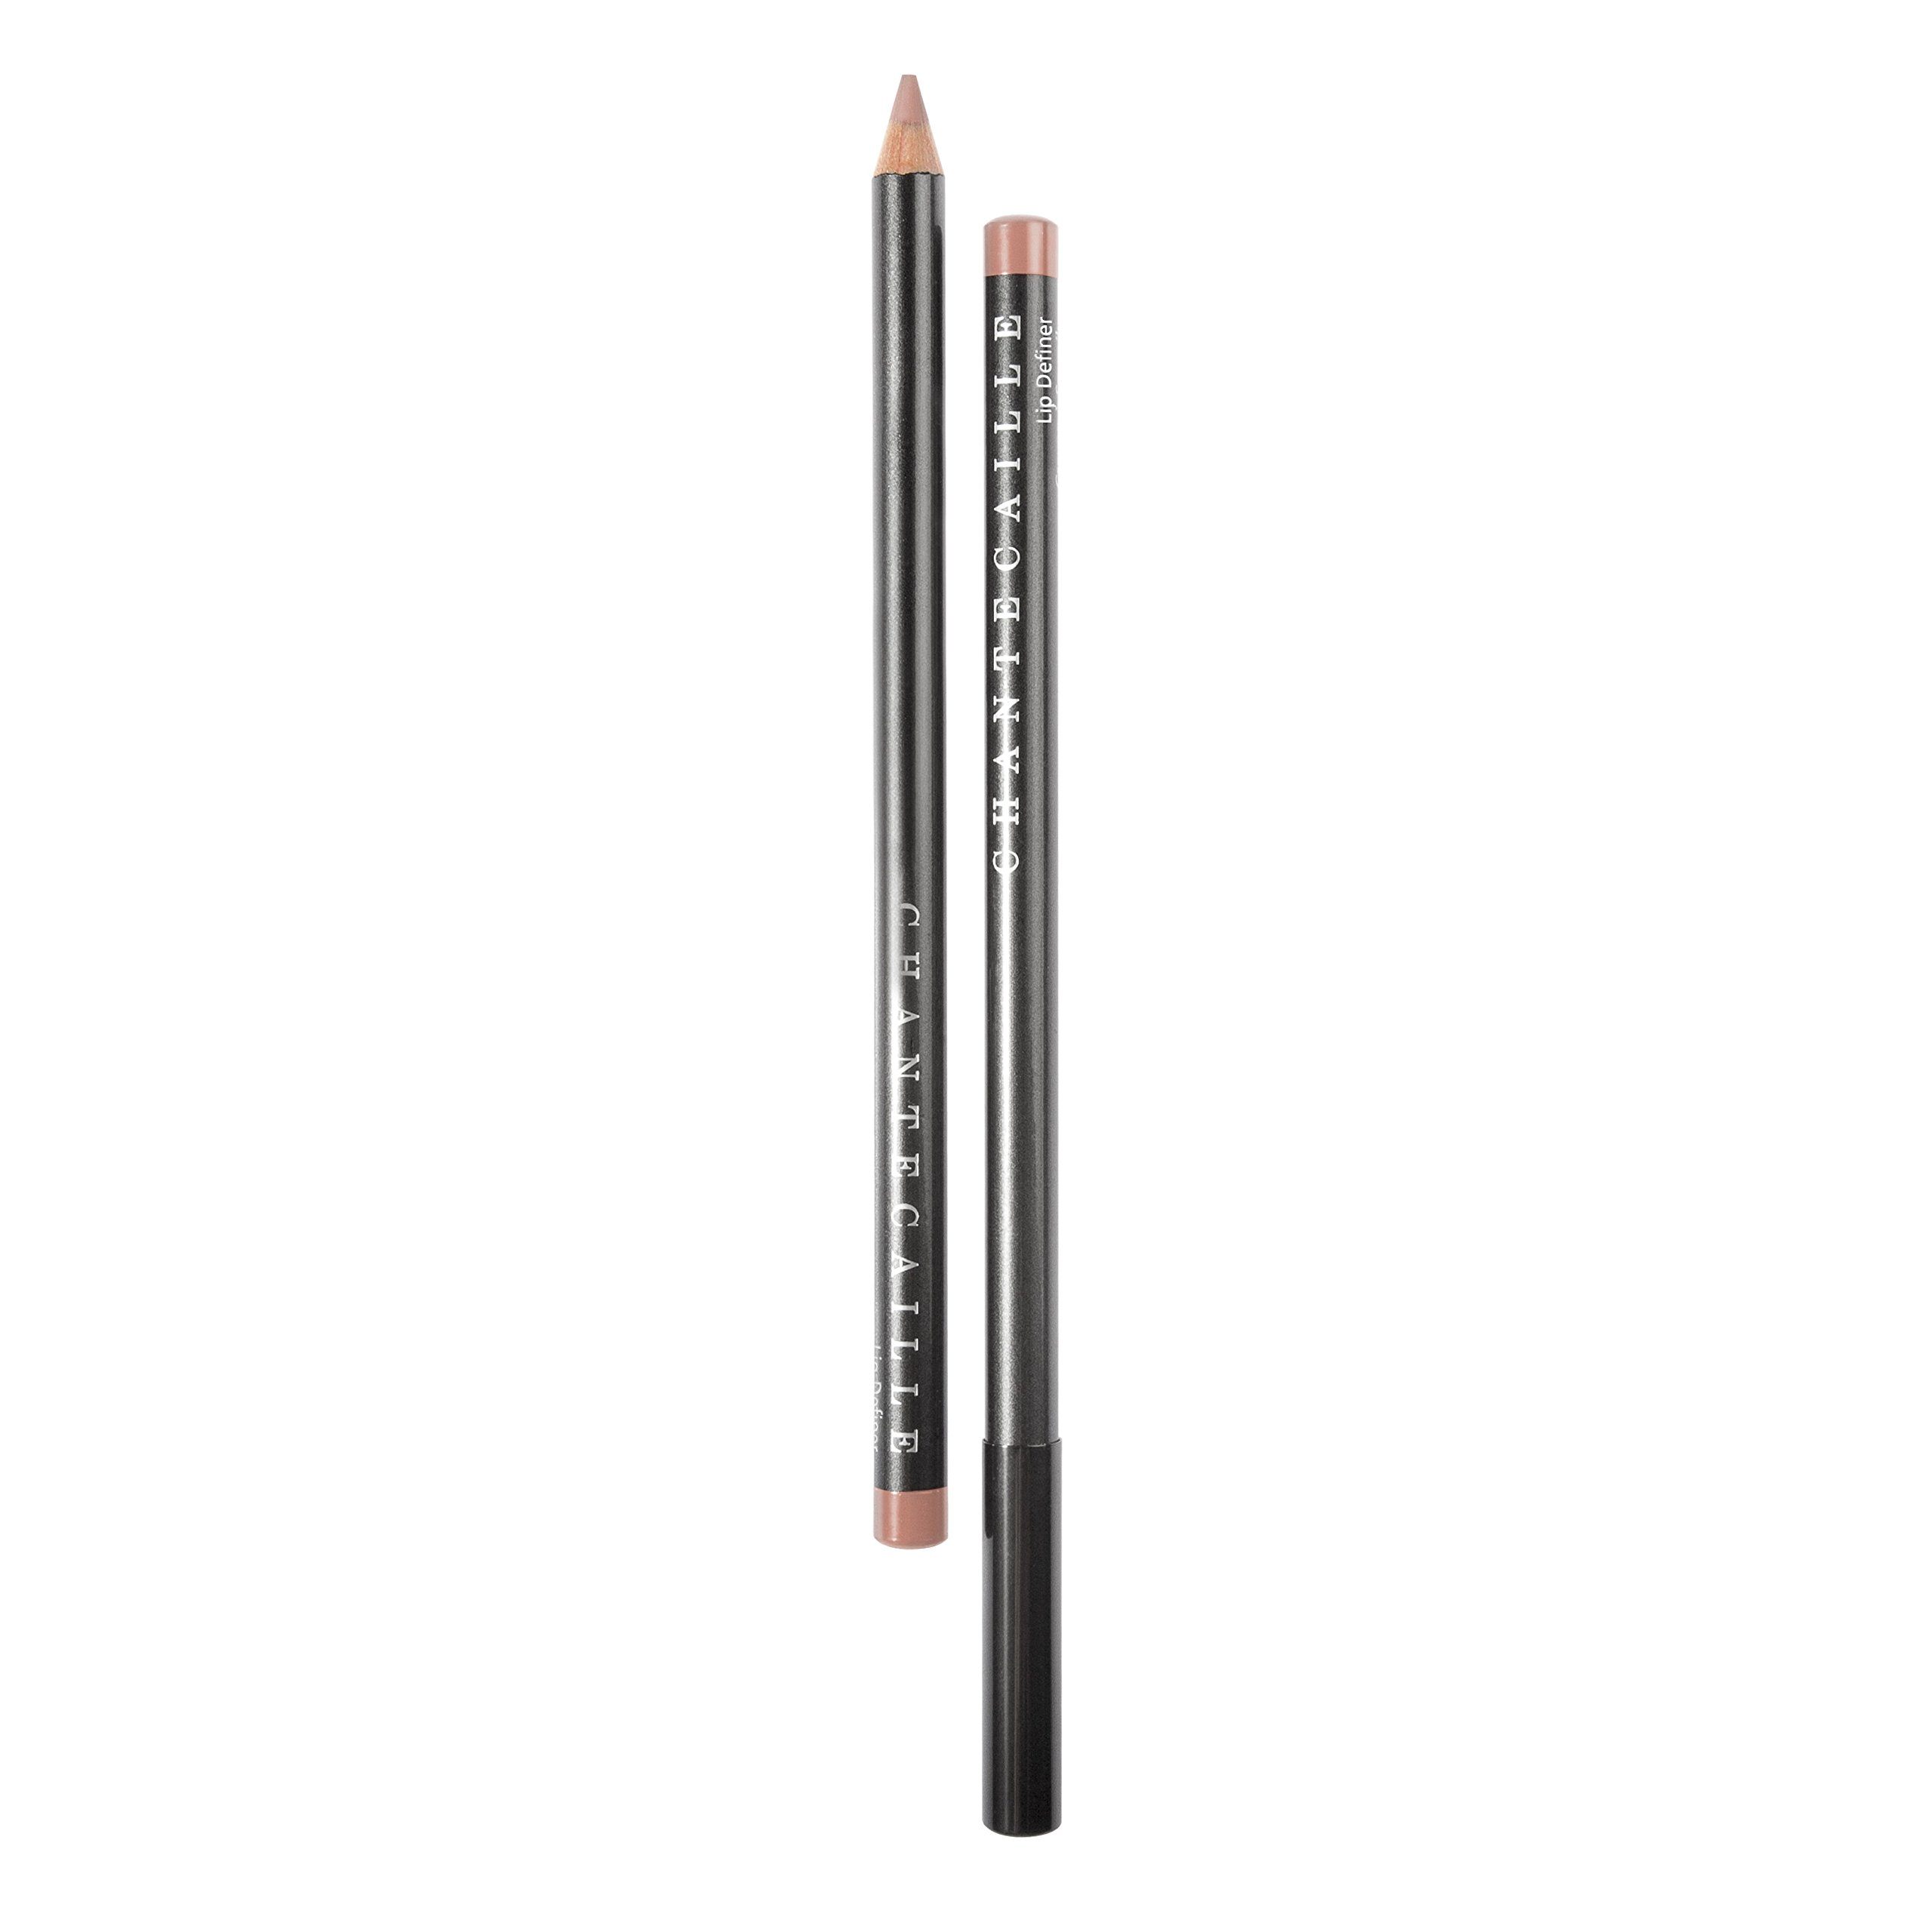 Chantecaille Lip Definer New Packaging, Nuance, 0.05 Ounce